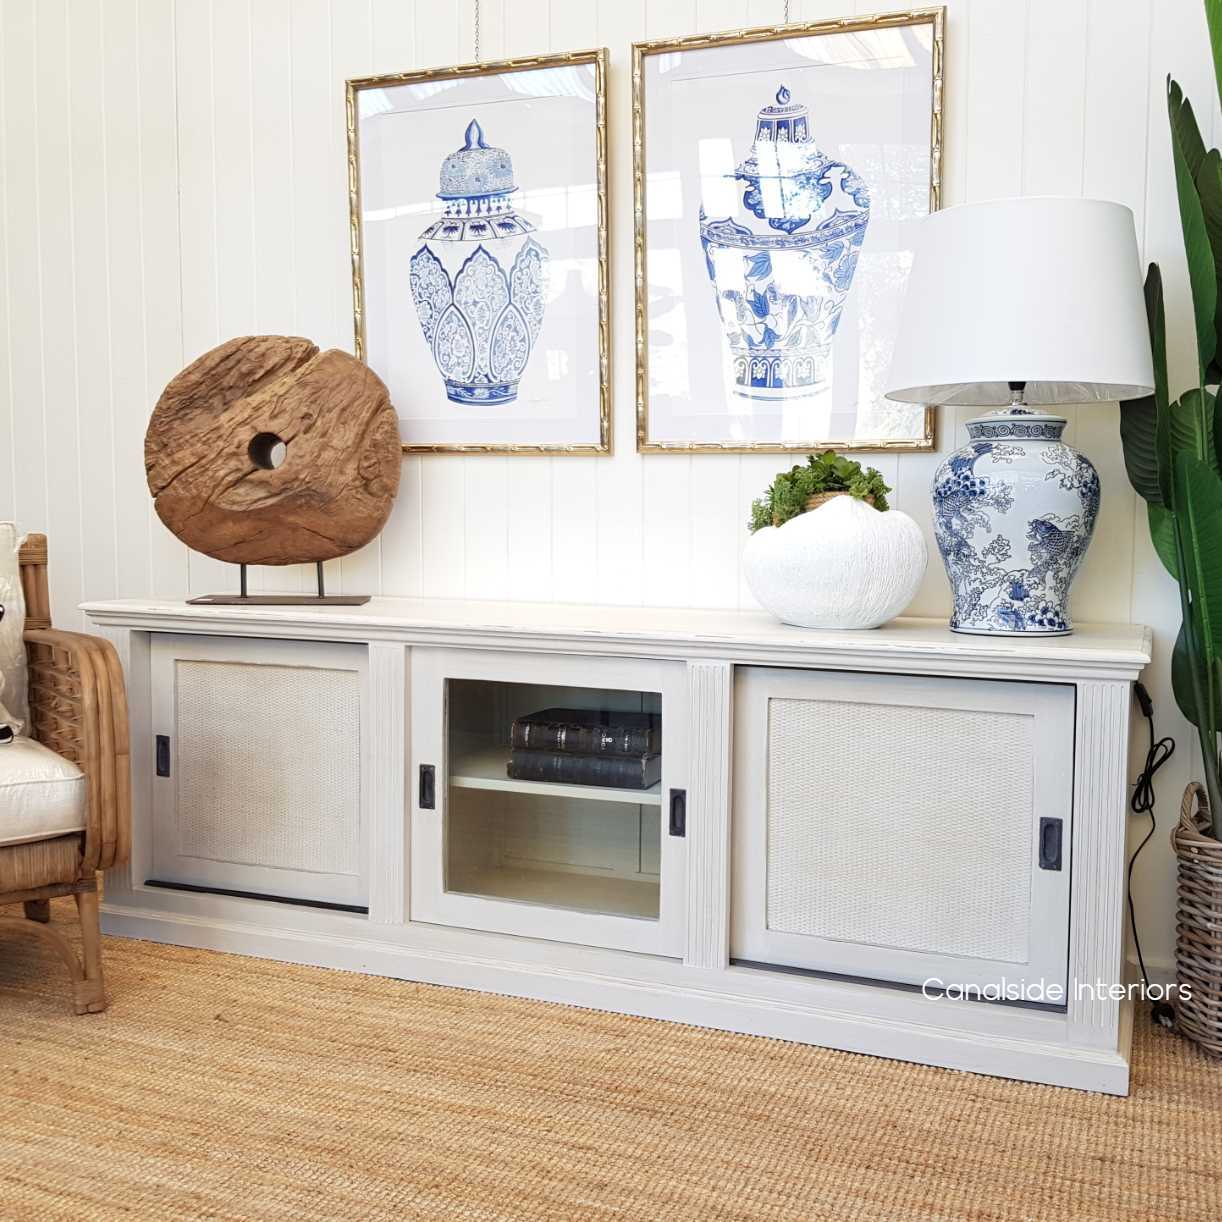 Brielle Rattan Entertainment Unit  HAMPTONS Style, PLANTATION Style, LIVING Room, LIVING TV Media & Storage, TABLES Sideboards & Buffets, STORAGE Sideboards & Buffets, island style, british colonial, provincial, tv unit